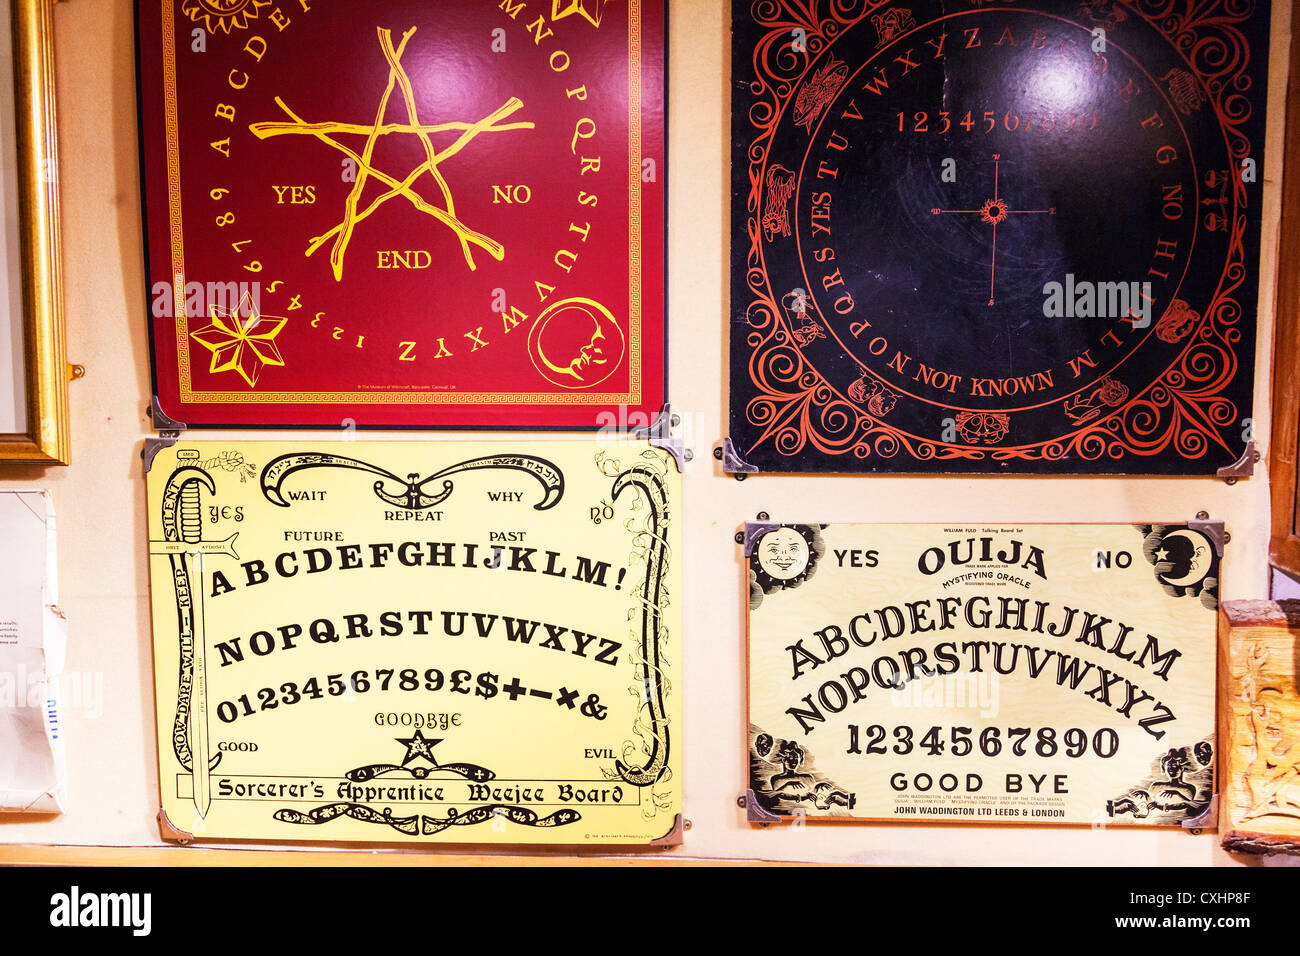 Witchcraft ouija board for summoning evil spirits boards by use of alphabet and numbers four typical summon undead - Stock Image